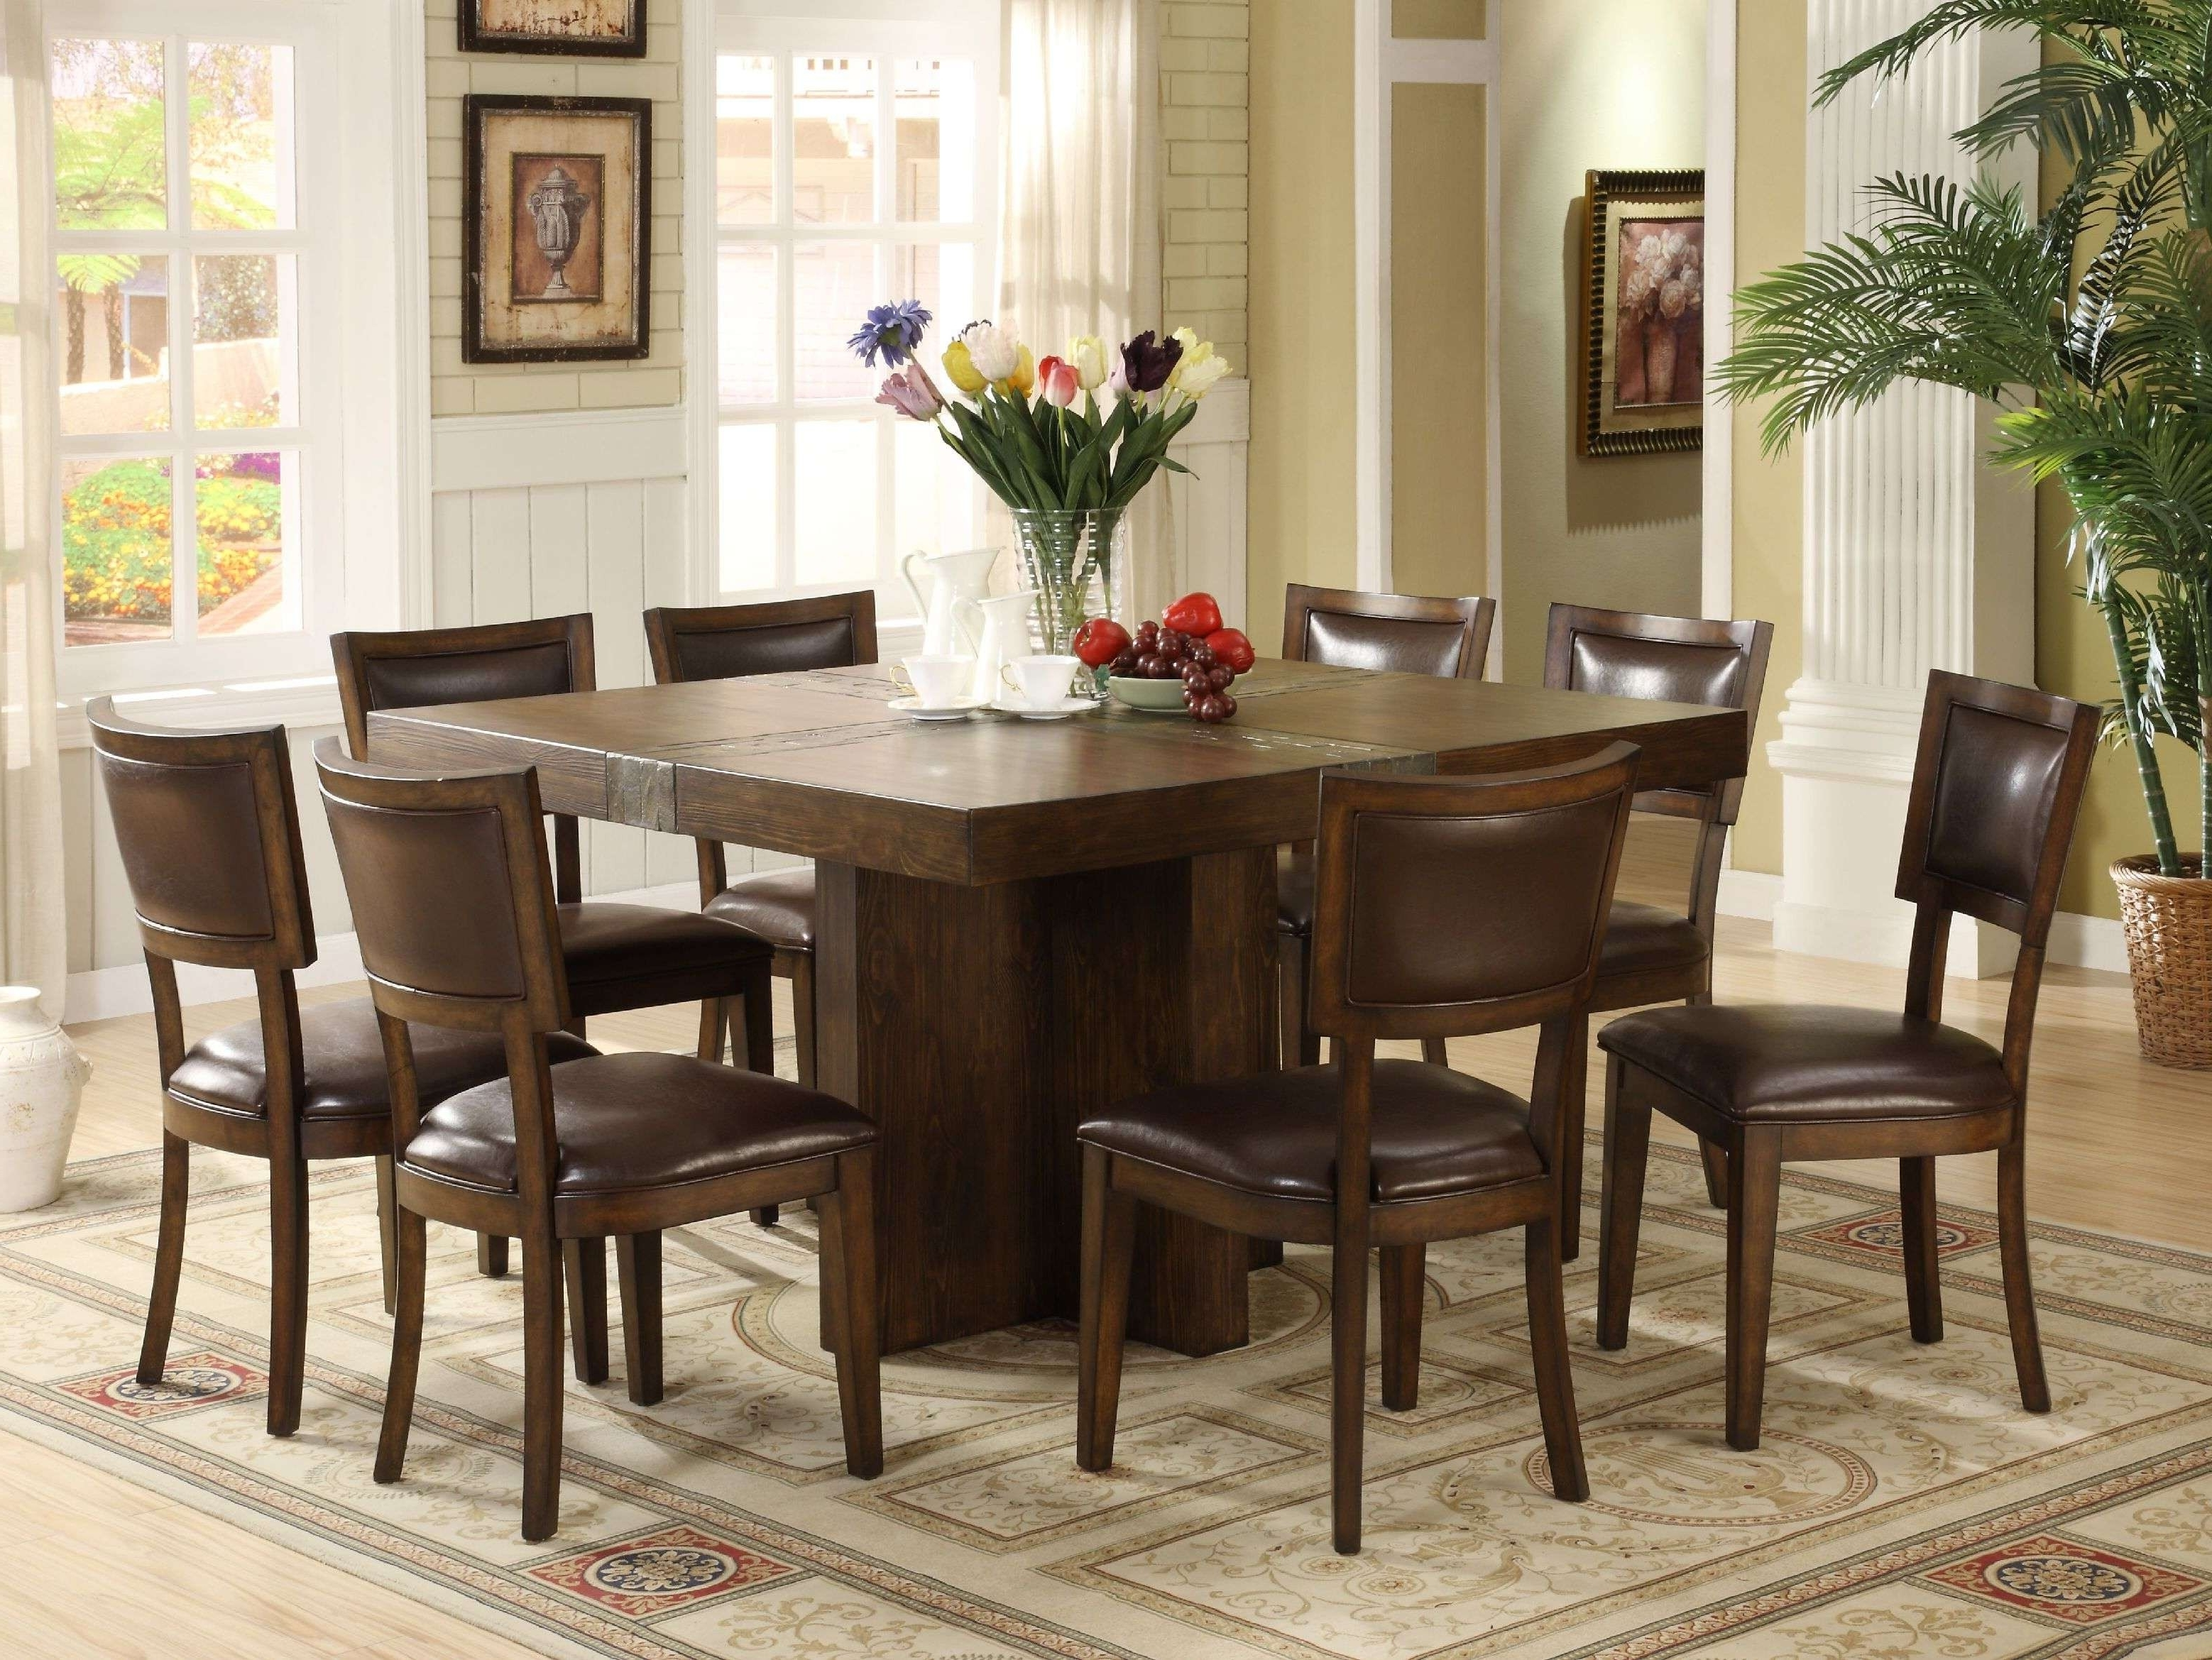 10 Seater Dining Table And Chairs Beautiful Best 8 Seater Dining Pertaining To Trendy 8 Seater Black Dining Tables (View 1 of 25)